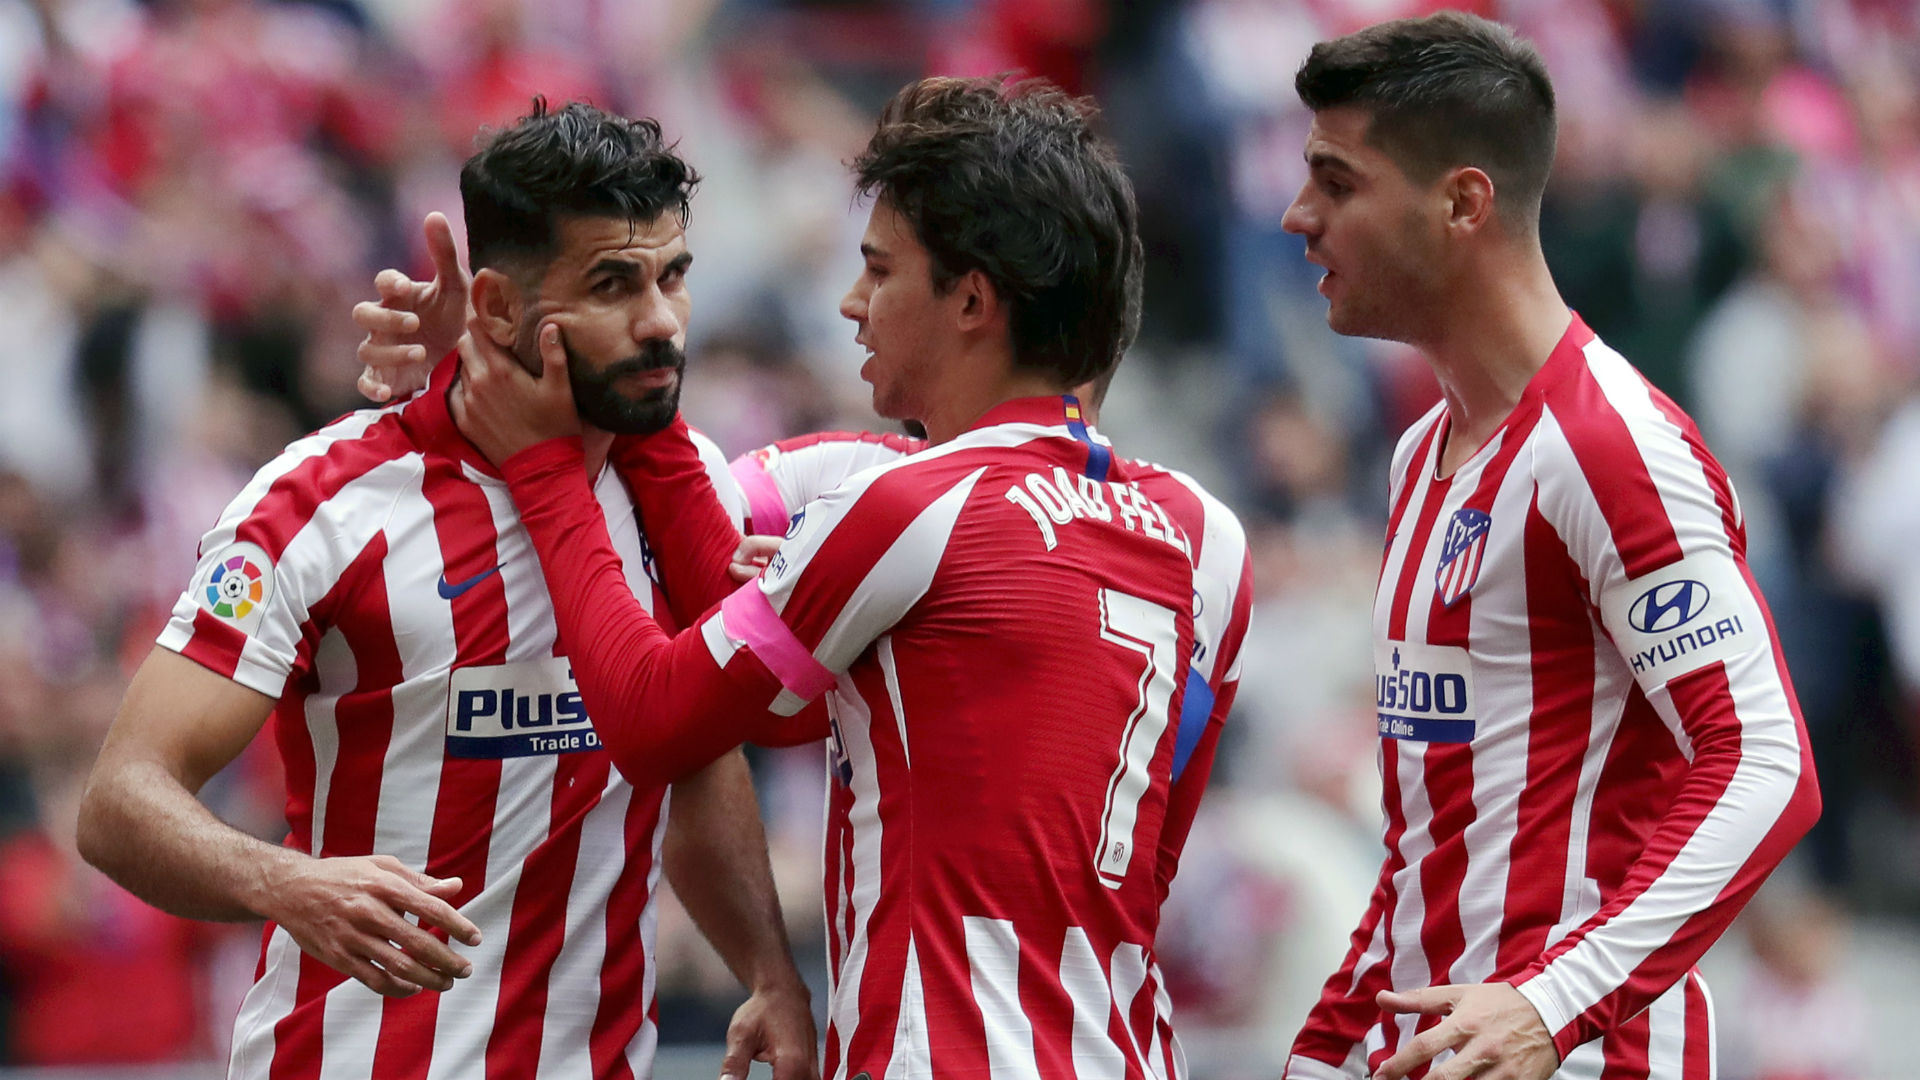 Atletico Madrid's squad for Liverpool: Costa returns, but Joao Felix is out - Bóng Đá